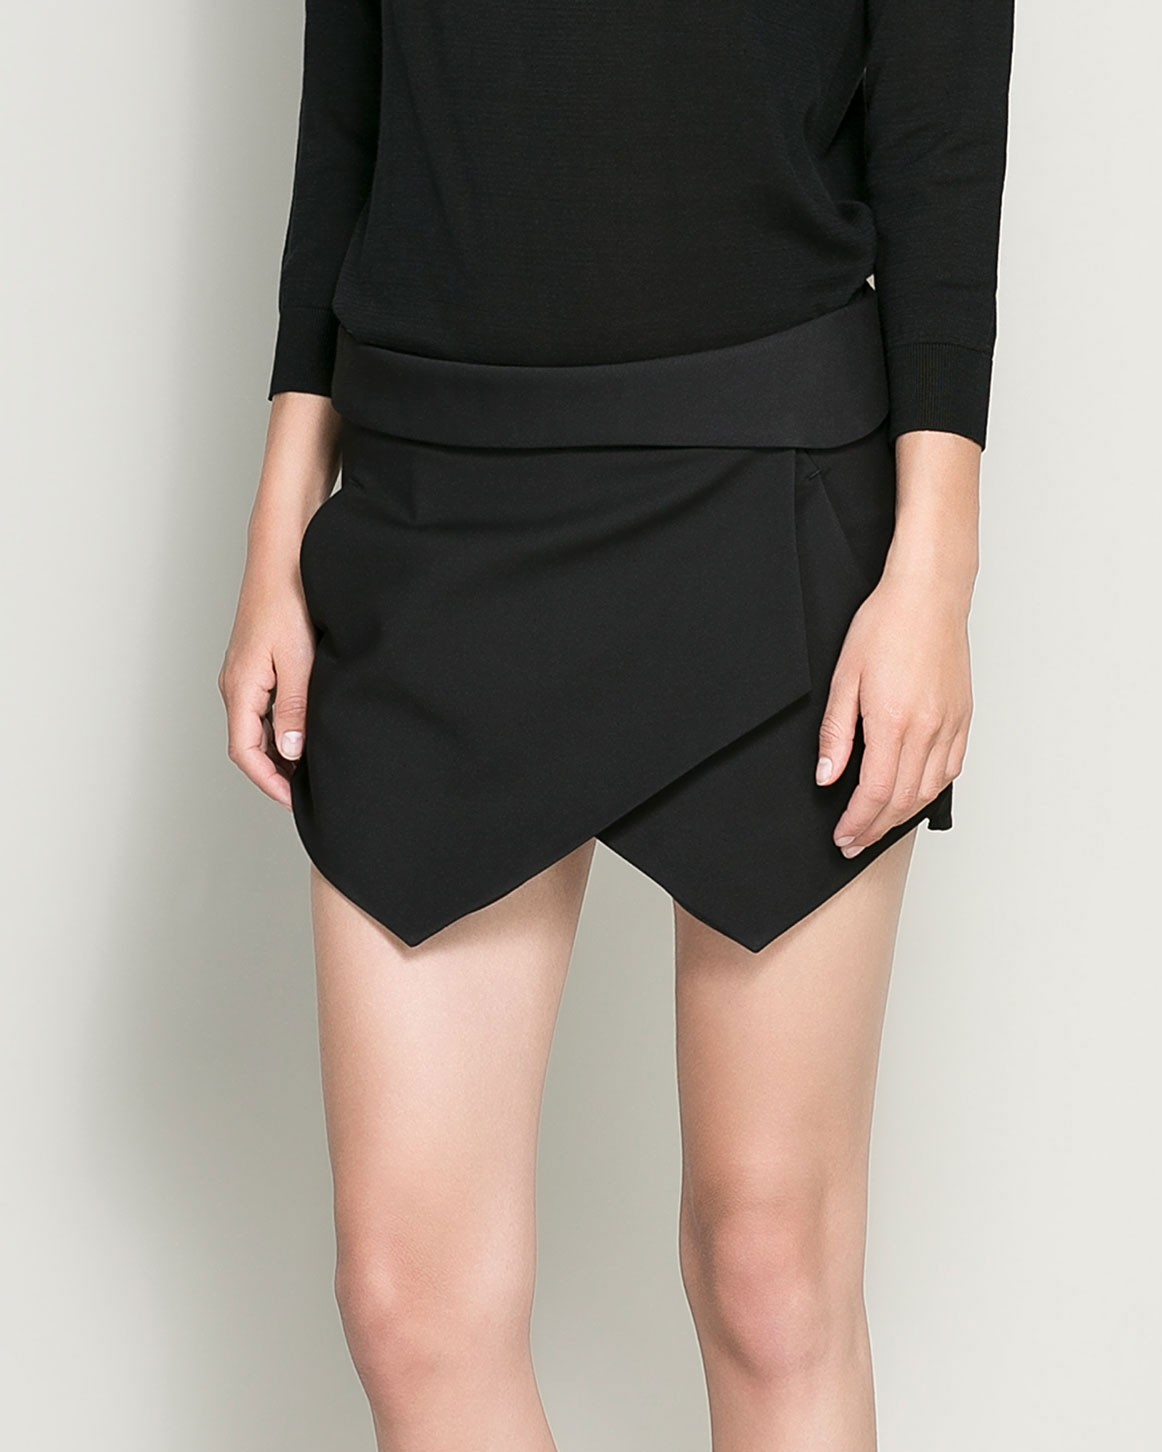 SmashGal is proud to offer one of the best fitting skirts with built-in shorts on the market! The skirt waistband is wider and set lower on the waist, for a comfortable fit. Skirt is A-line so it's super flattering on just about any body type. Black built-in shorts aren't long enough to show and they stay in place nice.